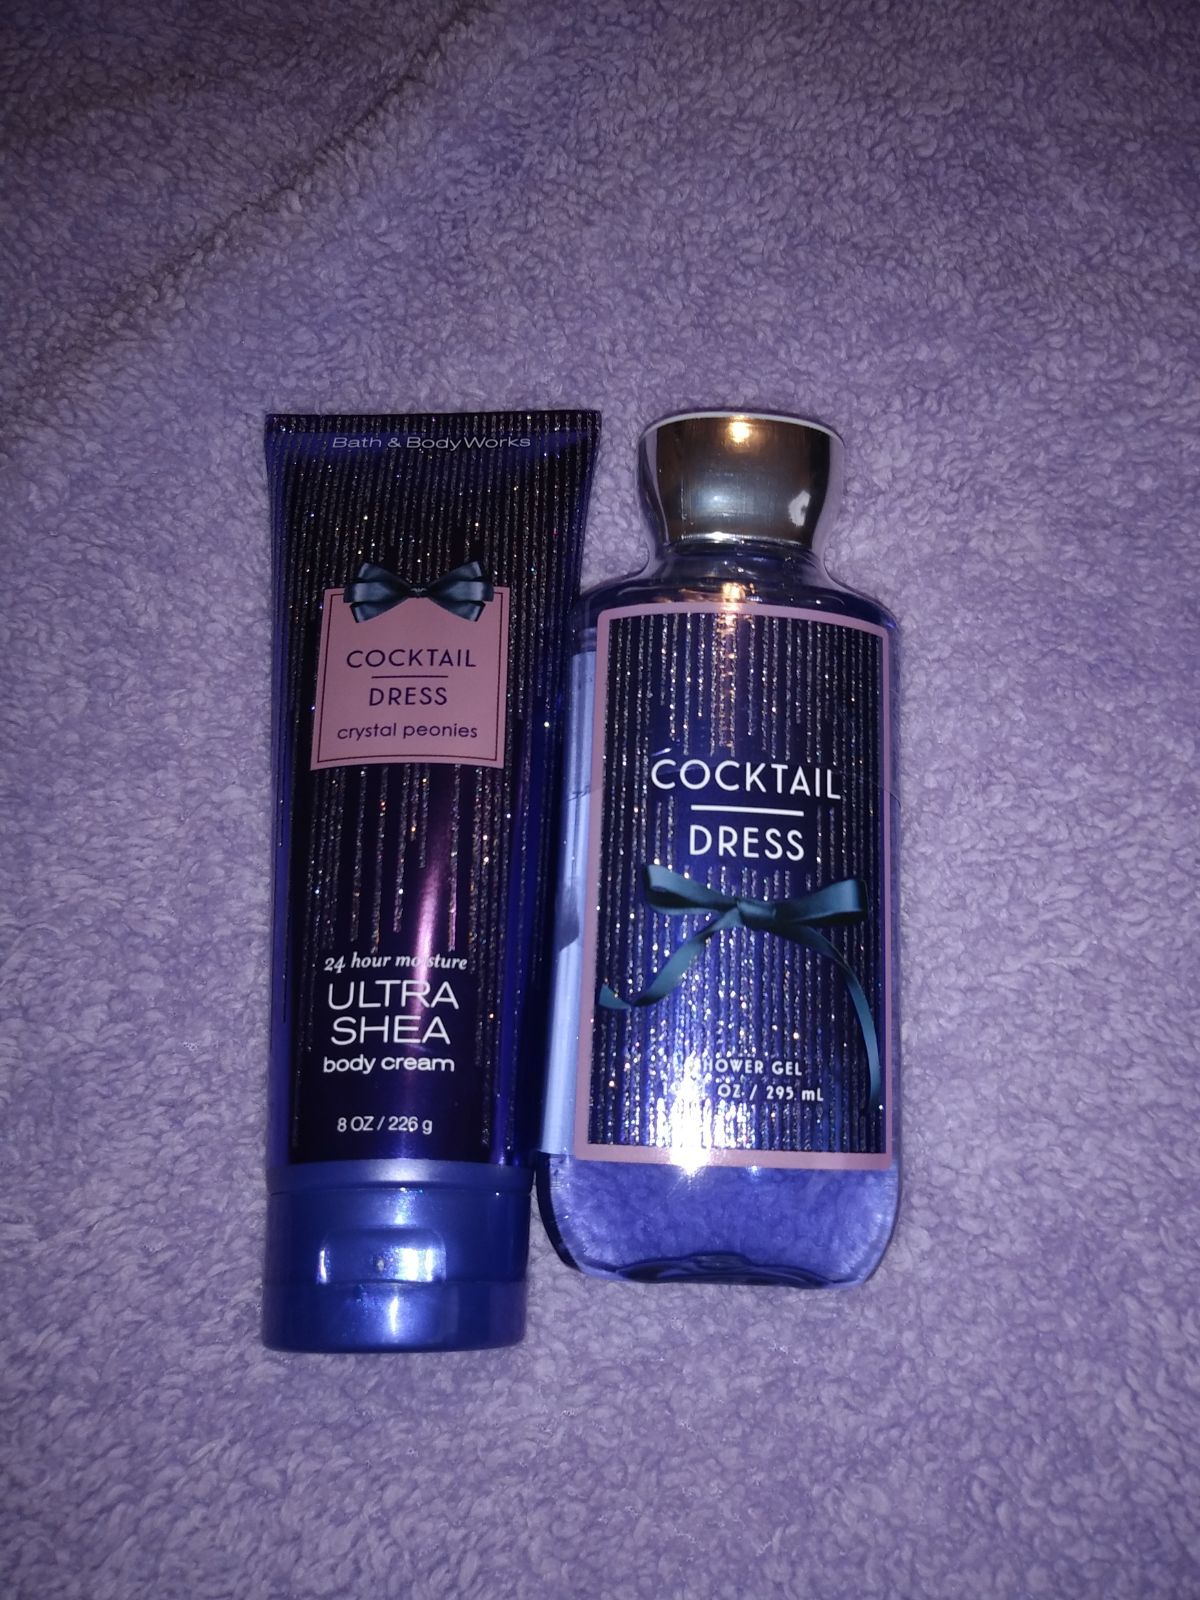 Brand New Cocktail Dress Shower Gel And Body Cream Body Cream Ultra Shea Body Cream Bath And Body Works [ 1600 x 1200 Pixel ]